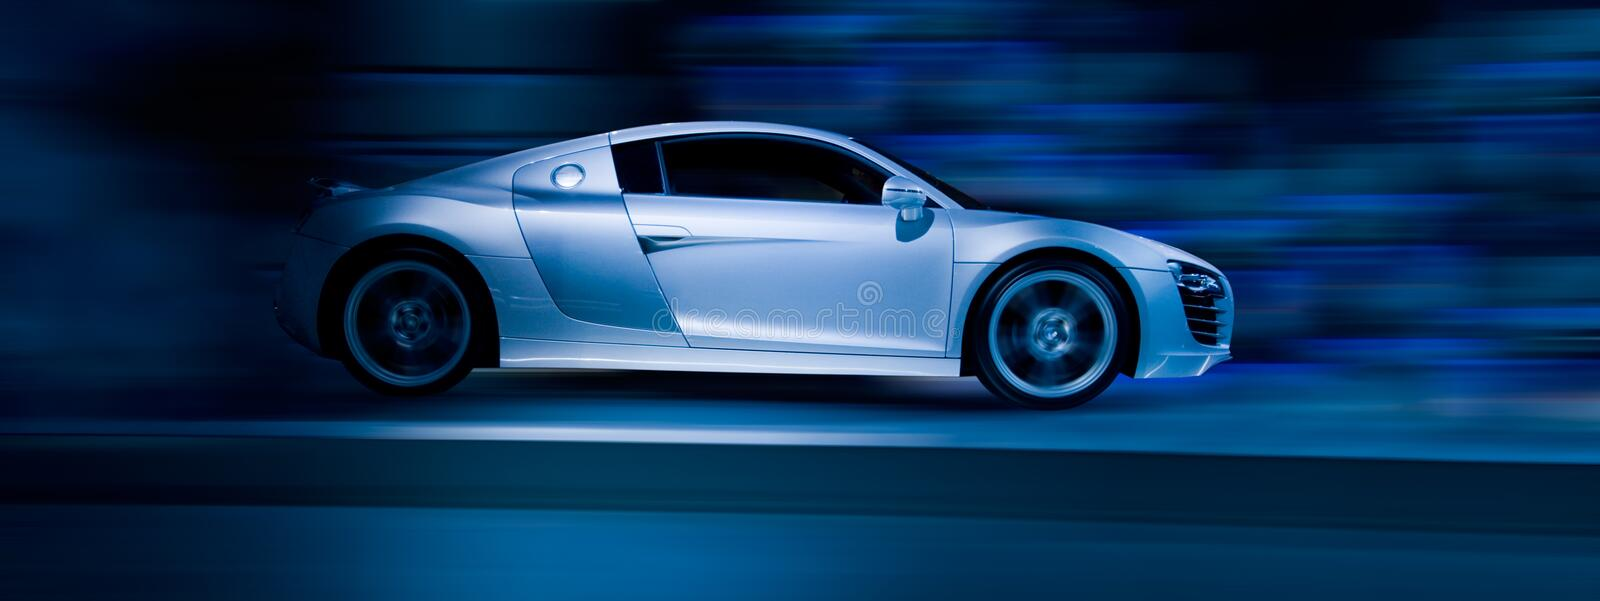 Silver sports car stock photography